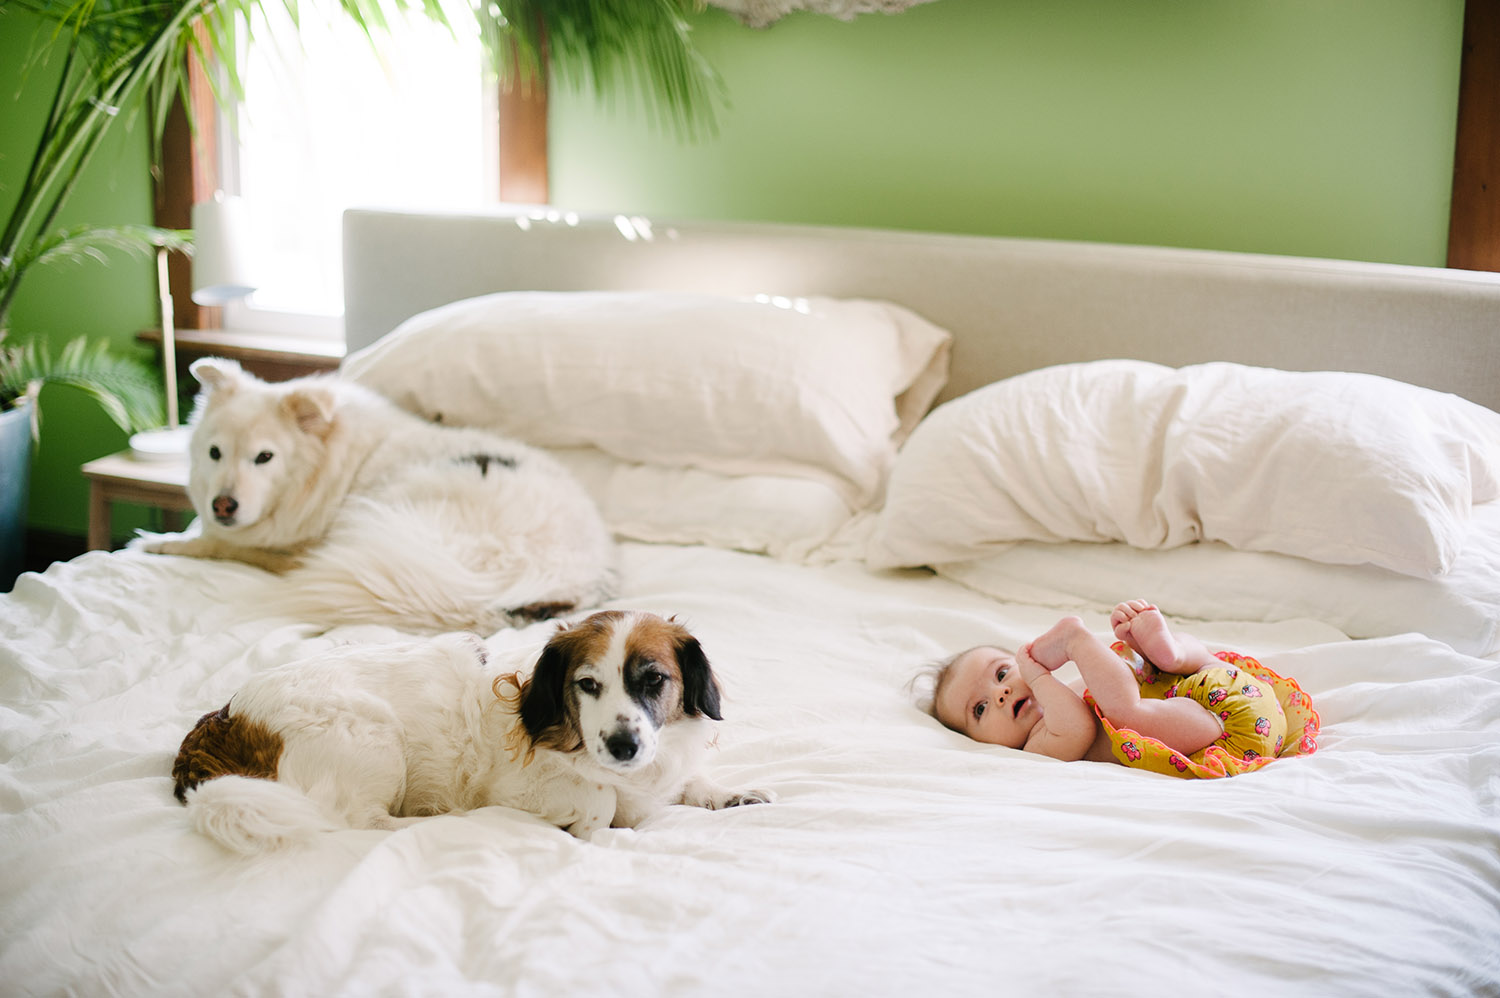 a baby on a bed with dogs